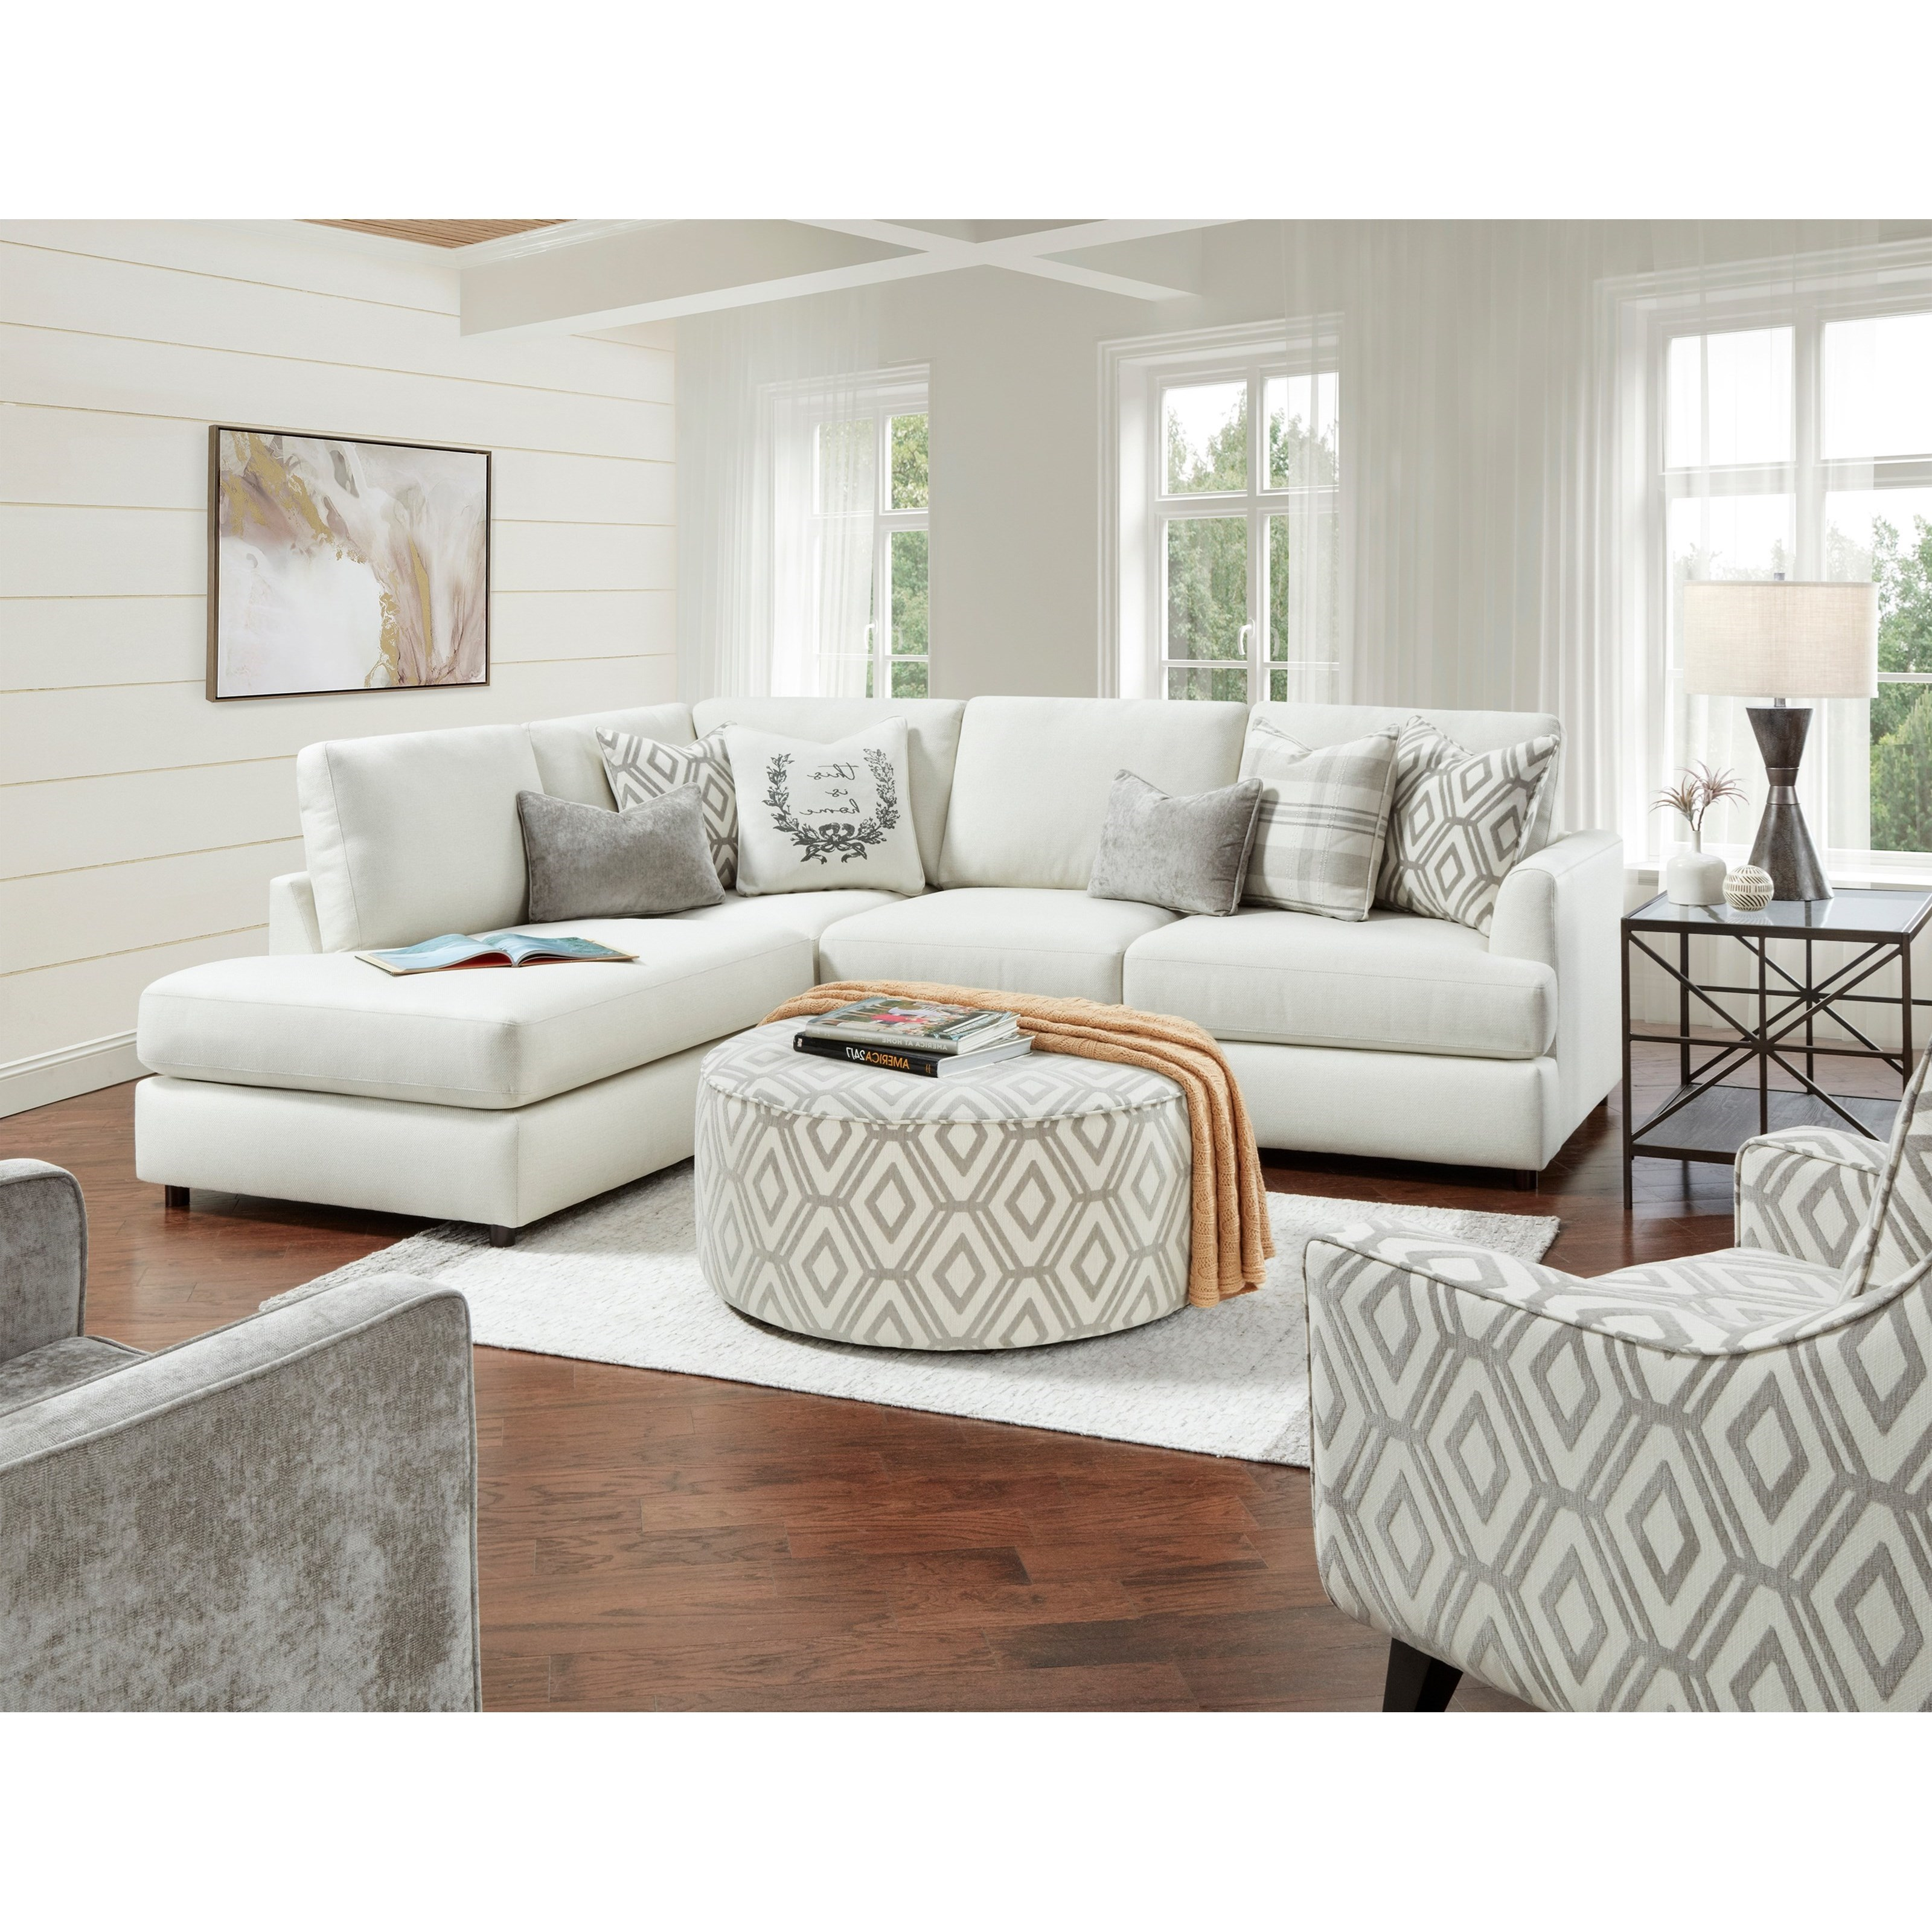 23-00 Living Room Group by Fusion Furniture at Prime Brothers Furniture